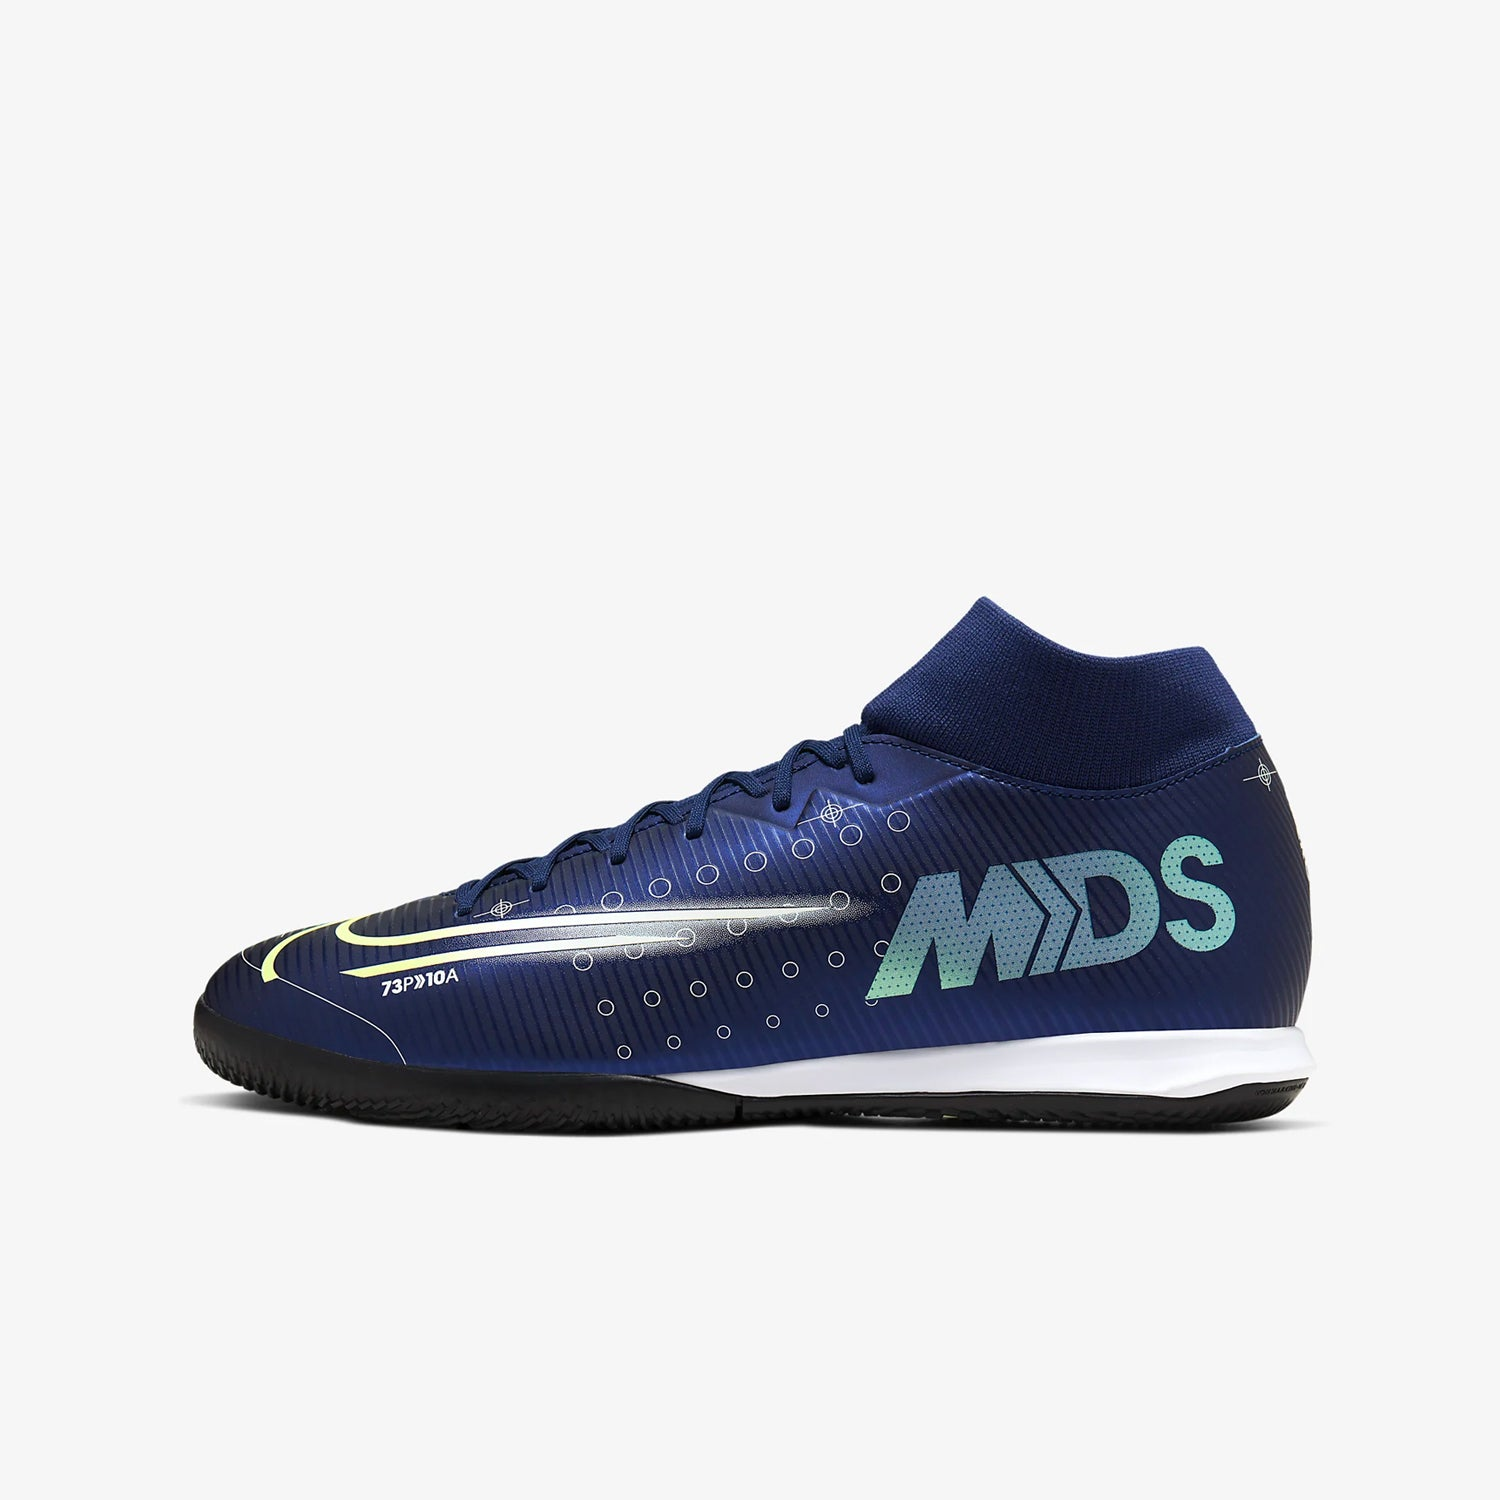 Mercurial Superfly 7 Academy MDS IC Indoor Soccer Shoes